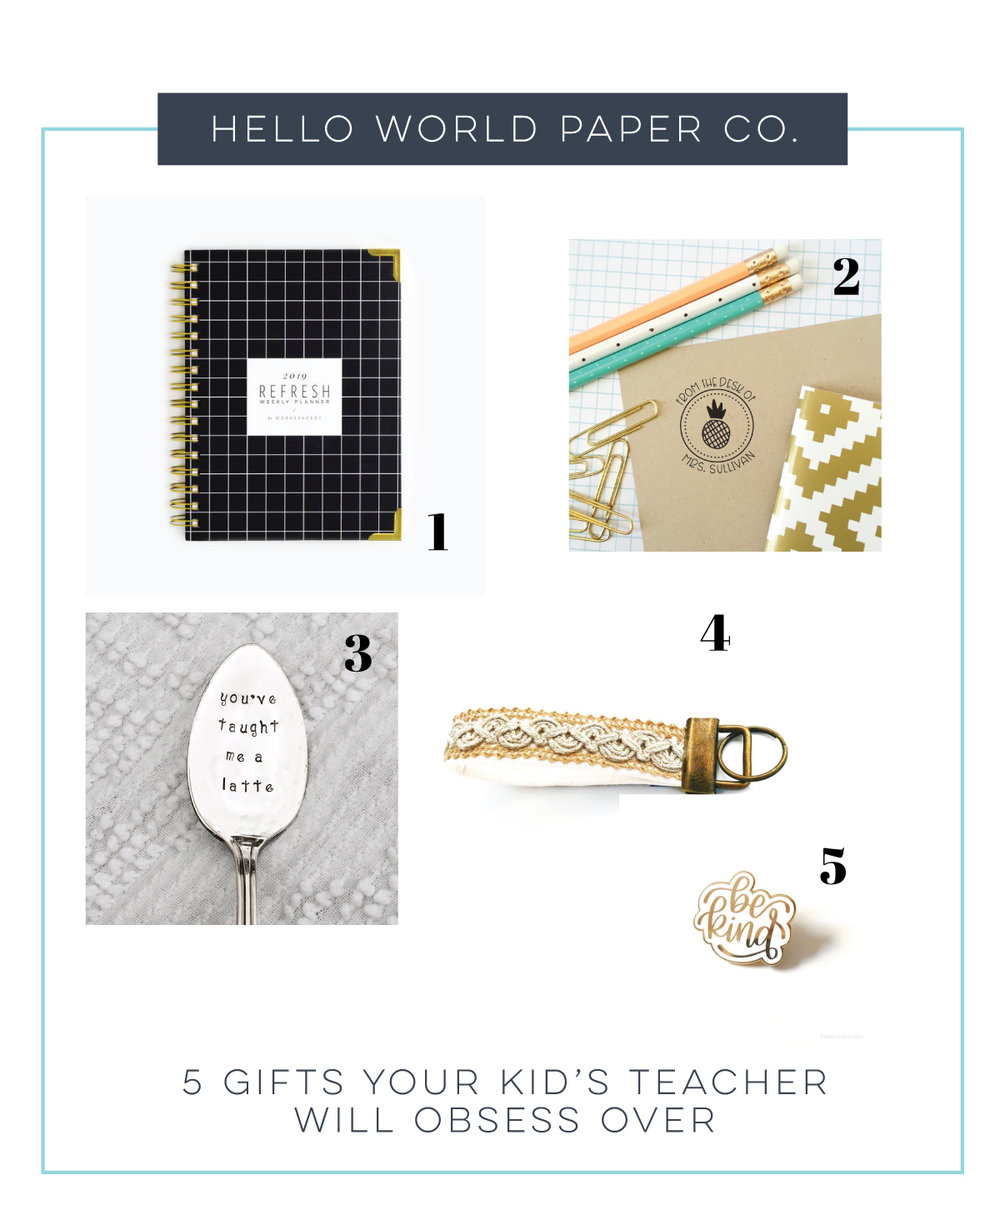 5 gifts for teachers.jpg